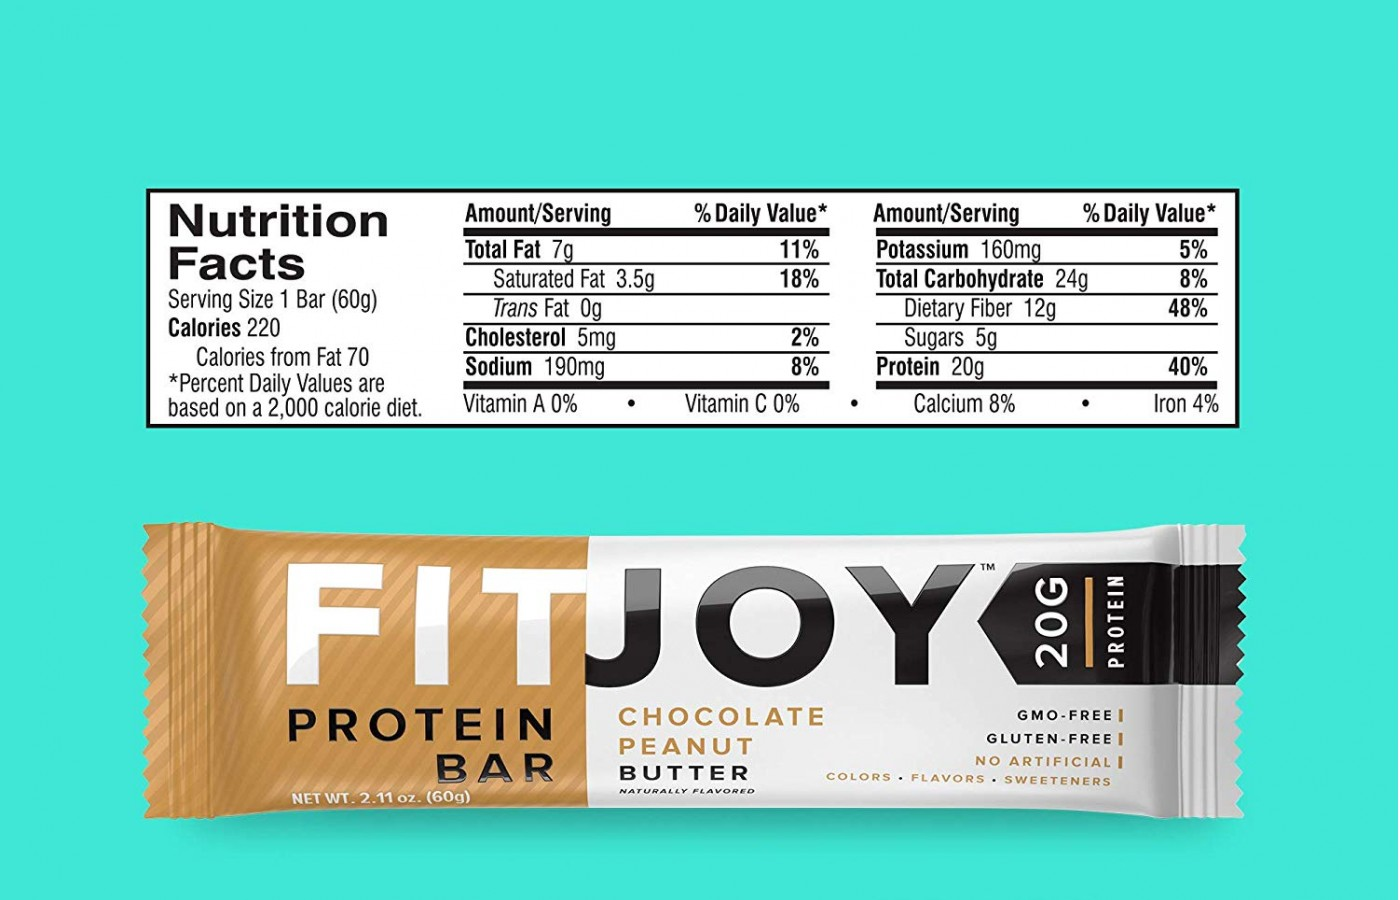 FitJoy Nutrition Facts